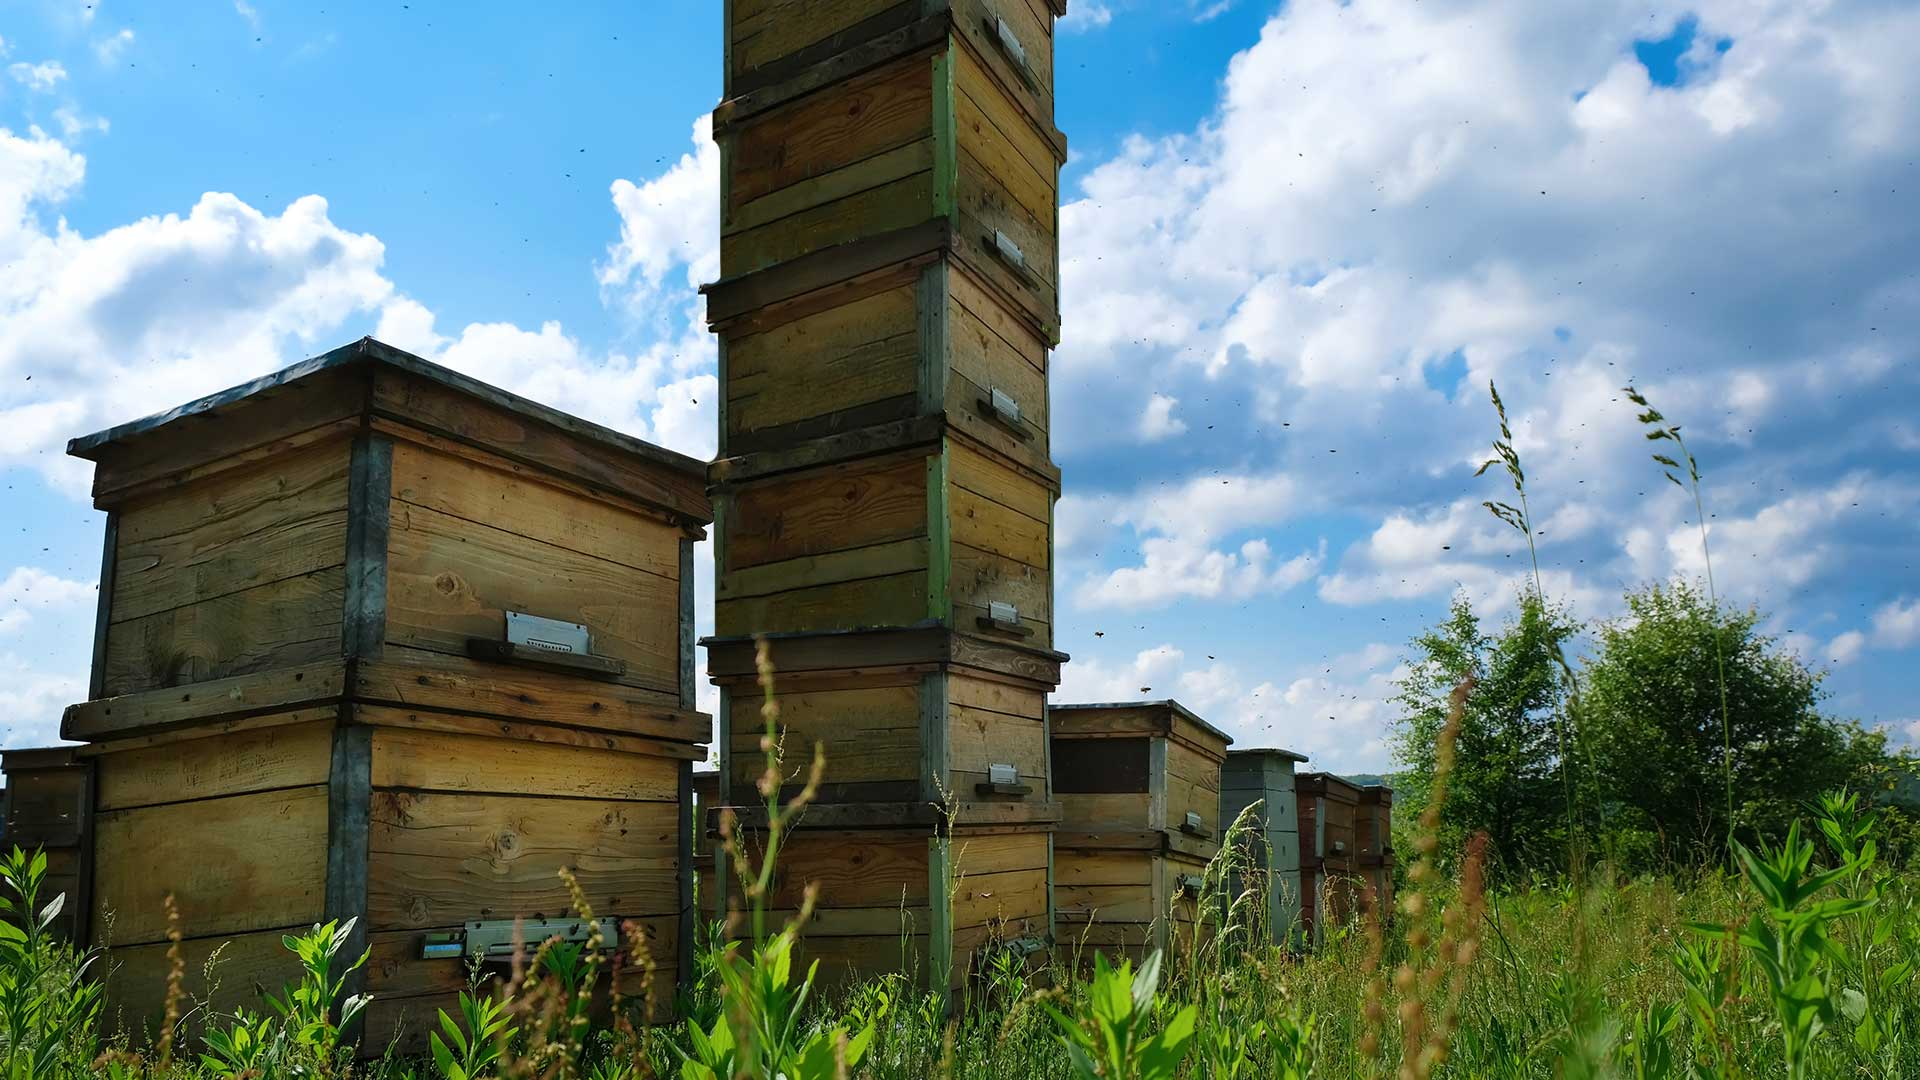 Como-Park-Bee-Skyrise-Sparks-Fears-of-Hive-Gentrification.jpg